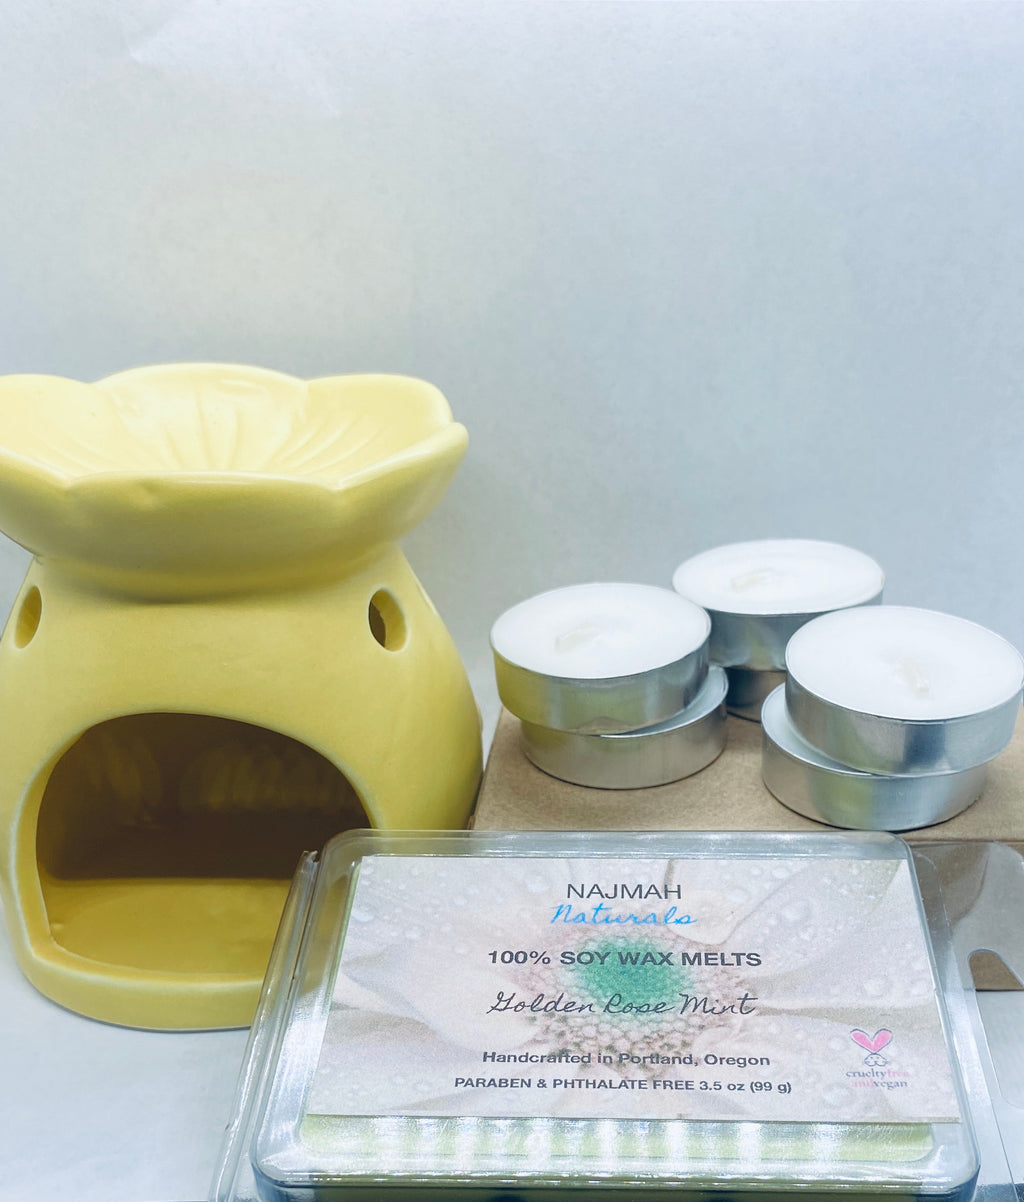 Our Wax Melts Bundle includes any one 3.5 oz package of Soy Wax Melts, one Wax Warmer, and six Tealight Candles.